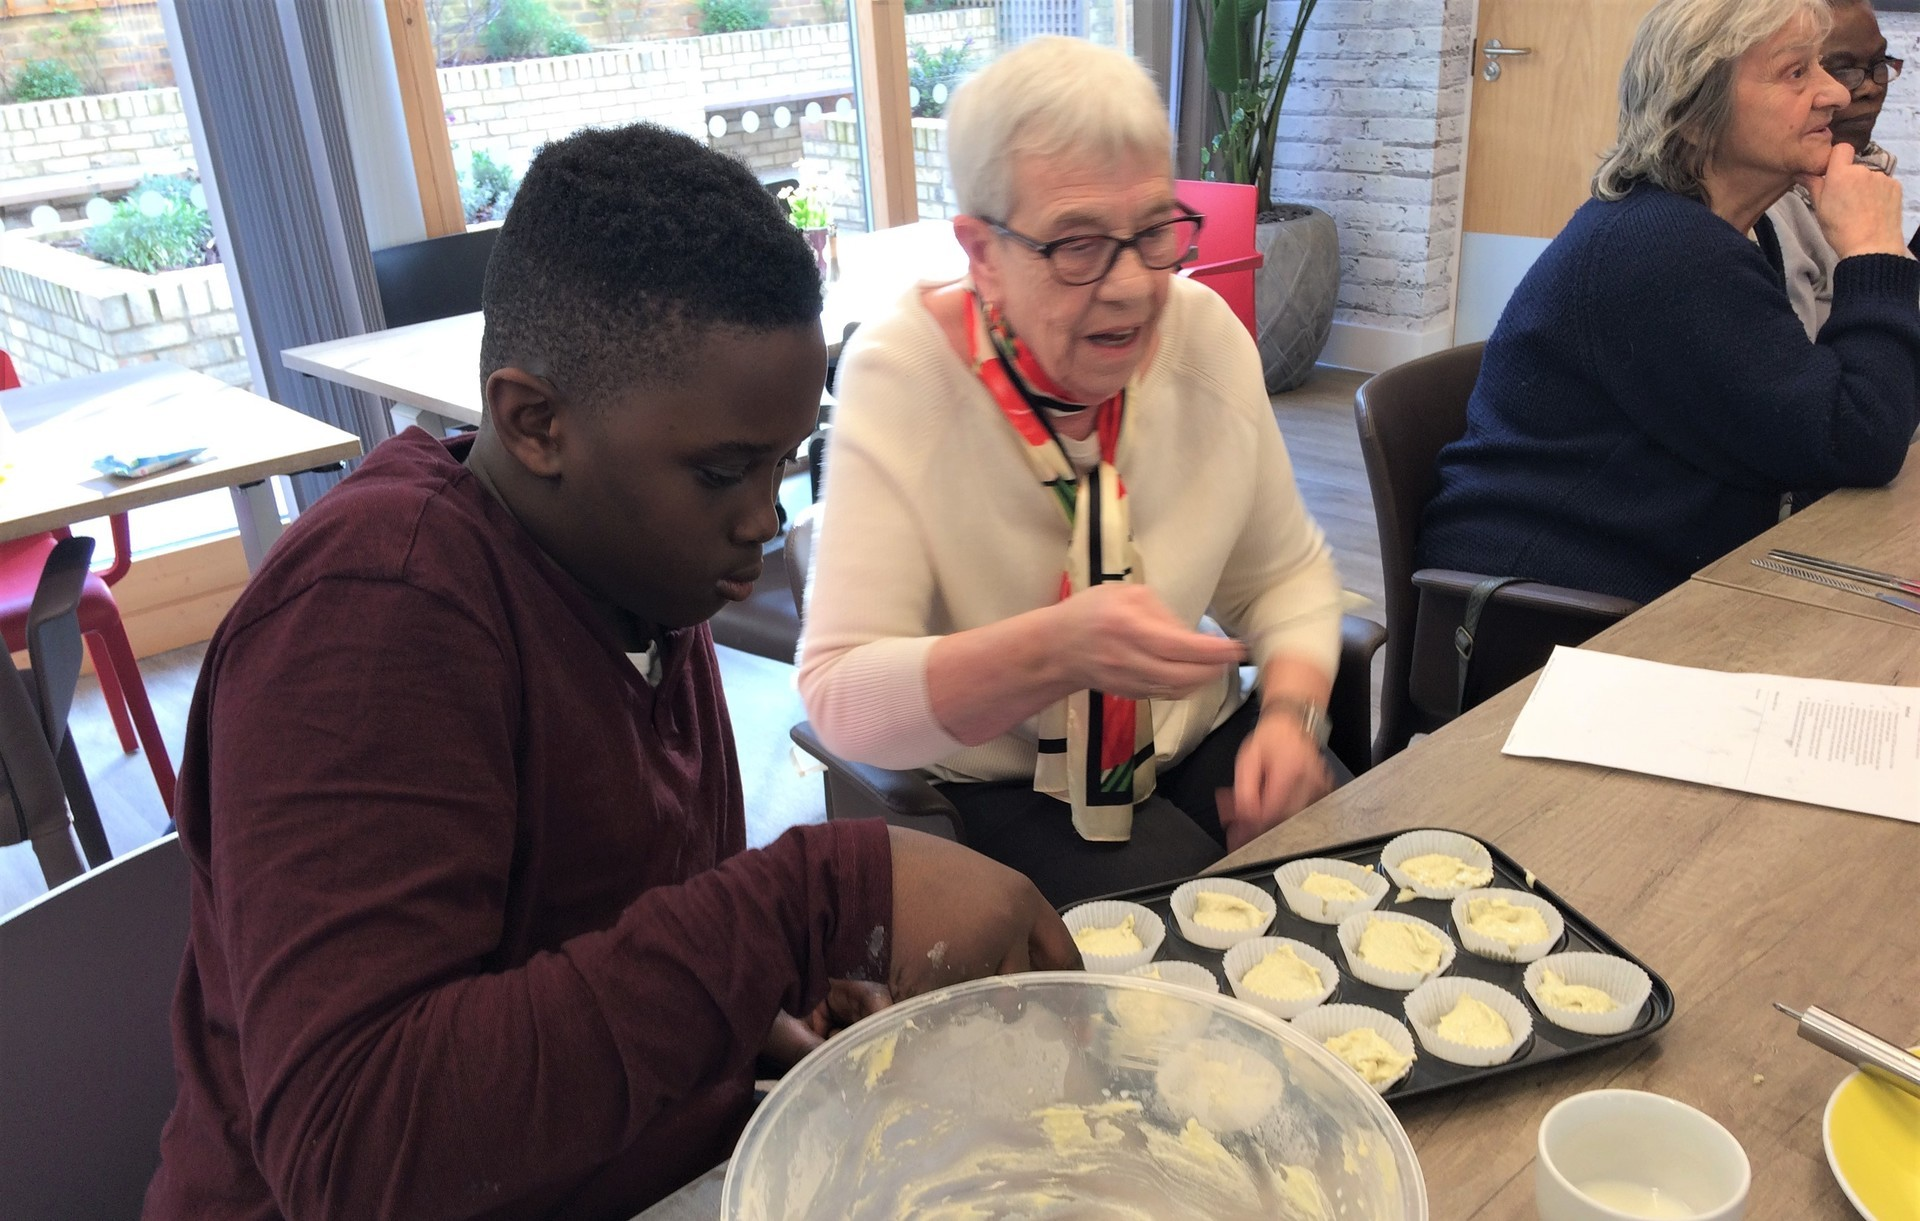 Intergenerational cake baking